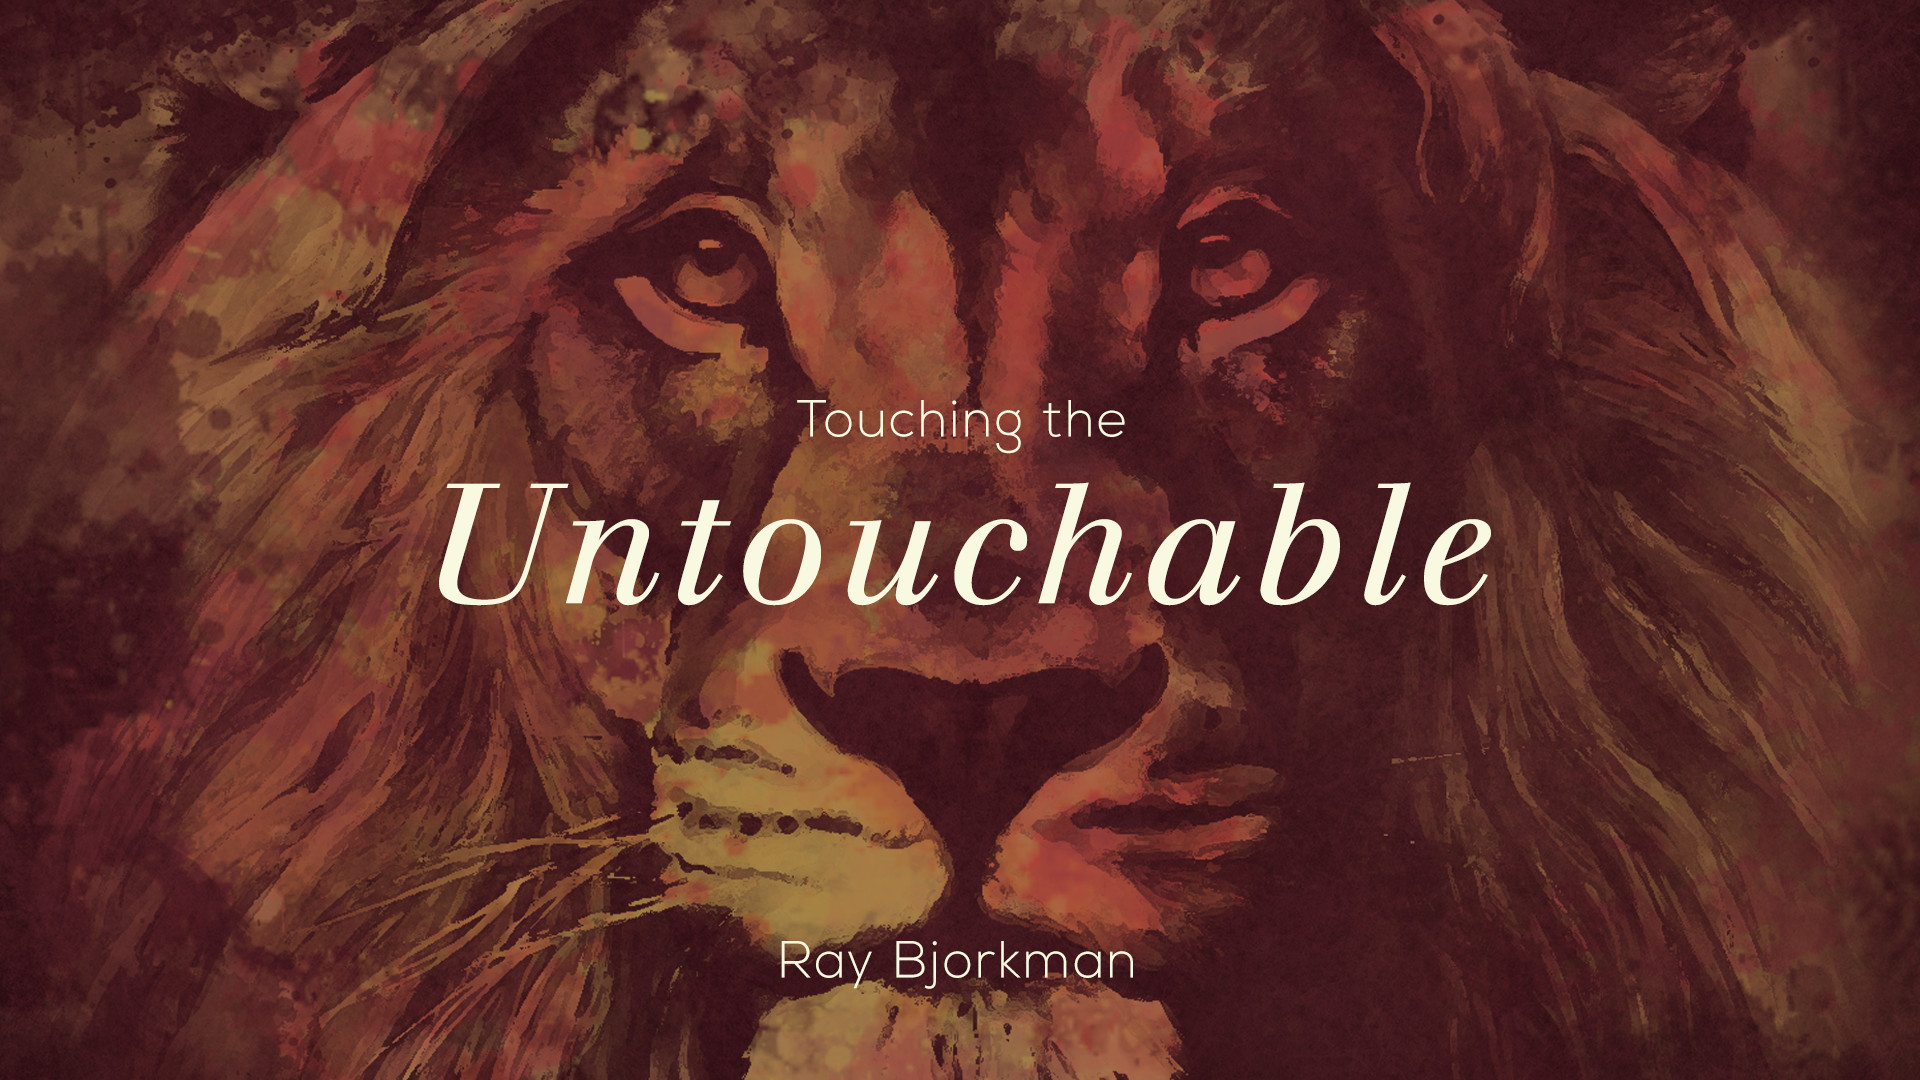 Touching the Untouchable